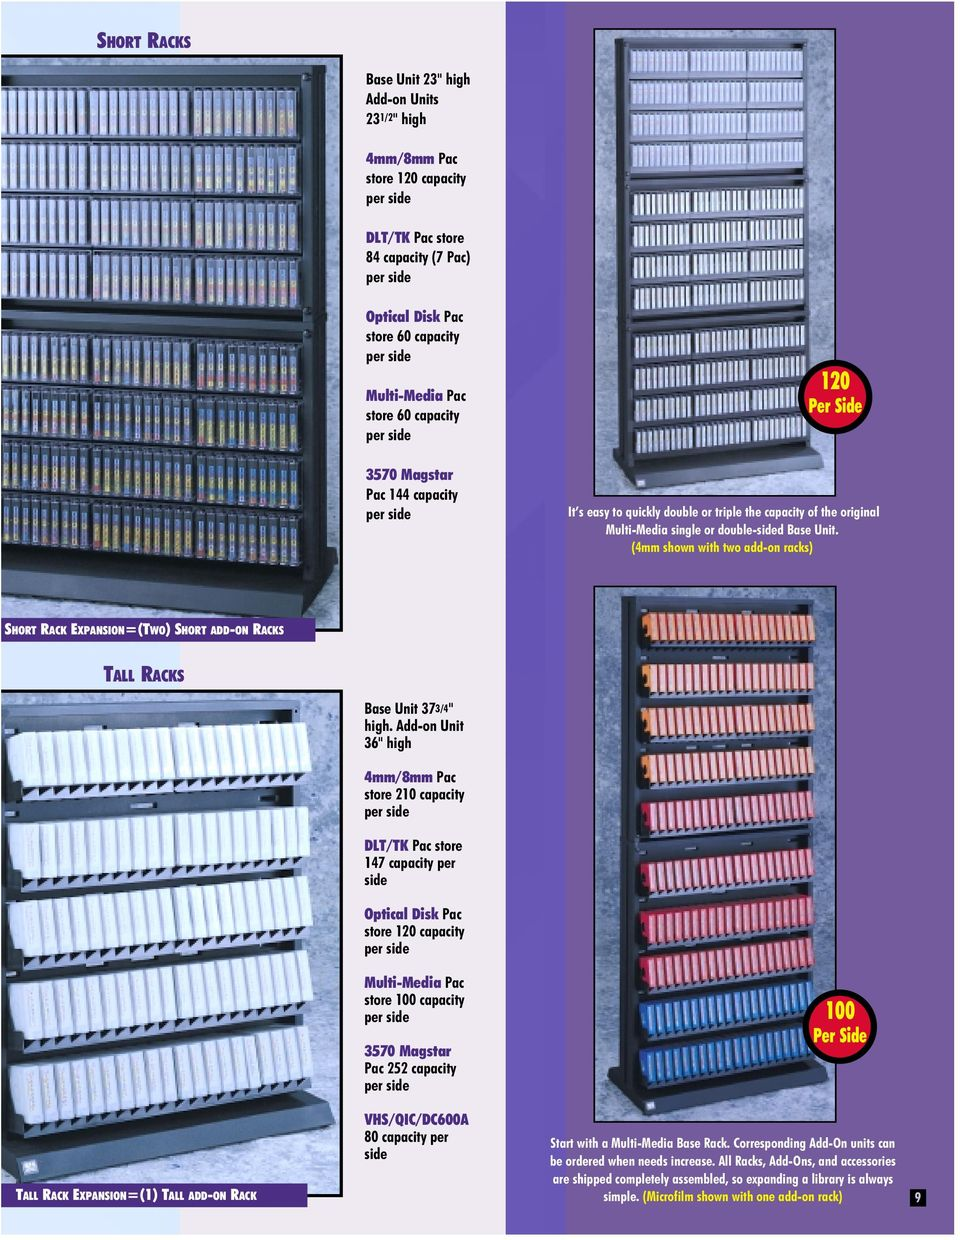 "(4mm shown with two add-on racks) SHORT RACK EXPANSION=(TWO) SHORTADD-ON RACKS TALL RACKS Base Unit 373/4"" high."